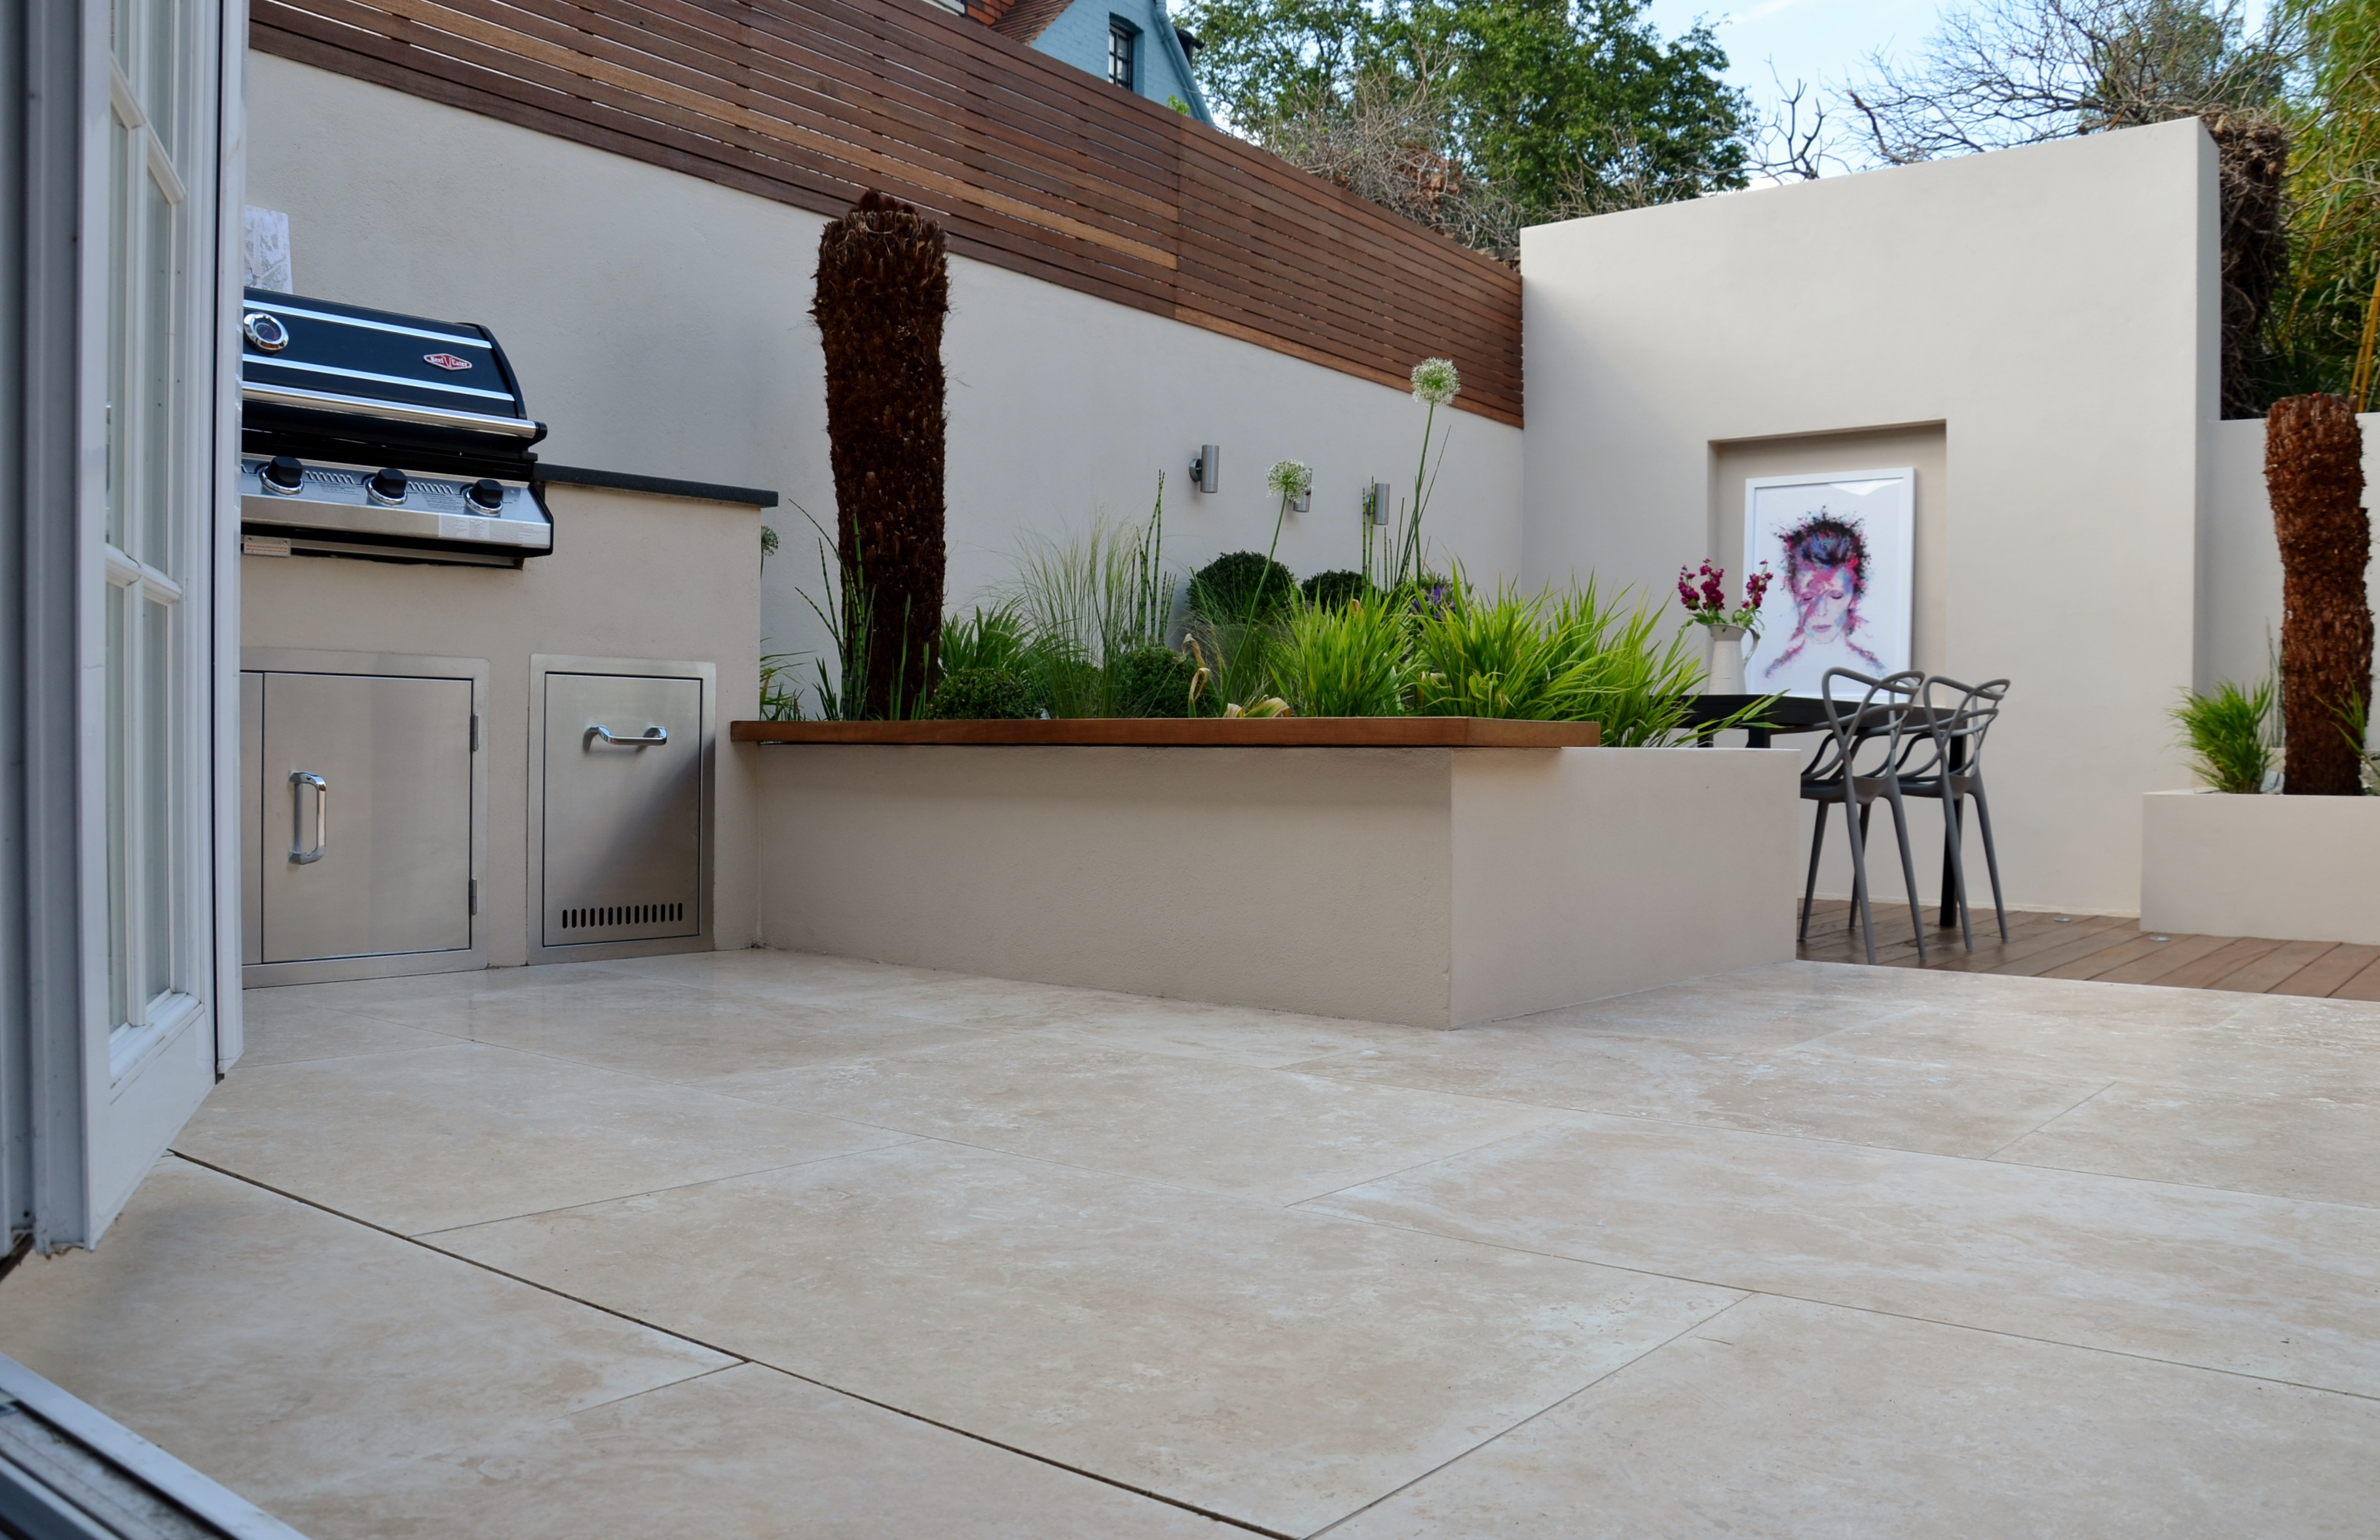 modern garden design outdoor room with kitchen seating  balham clapham